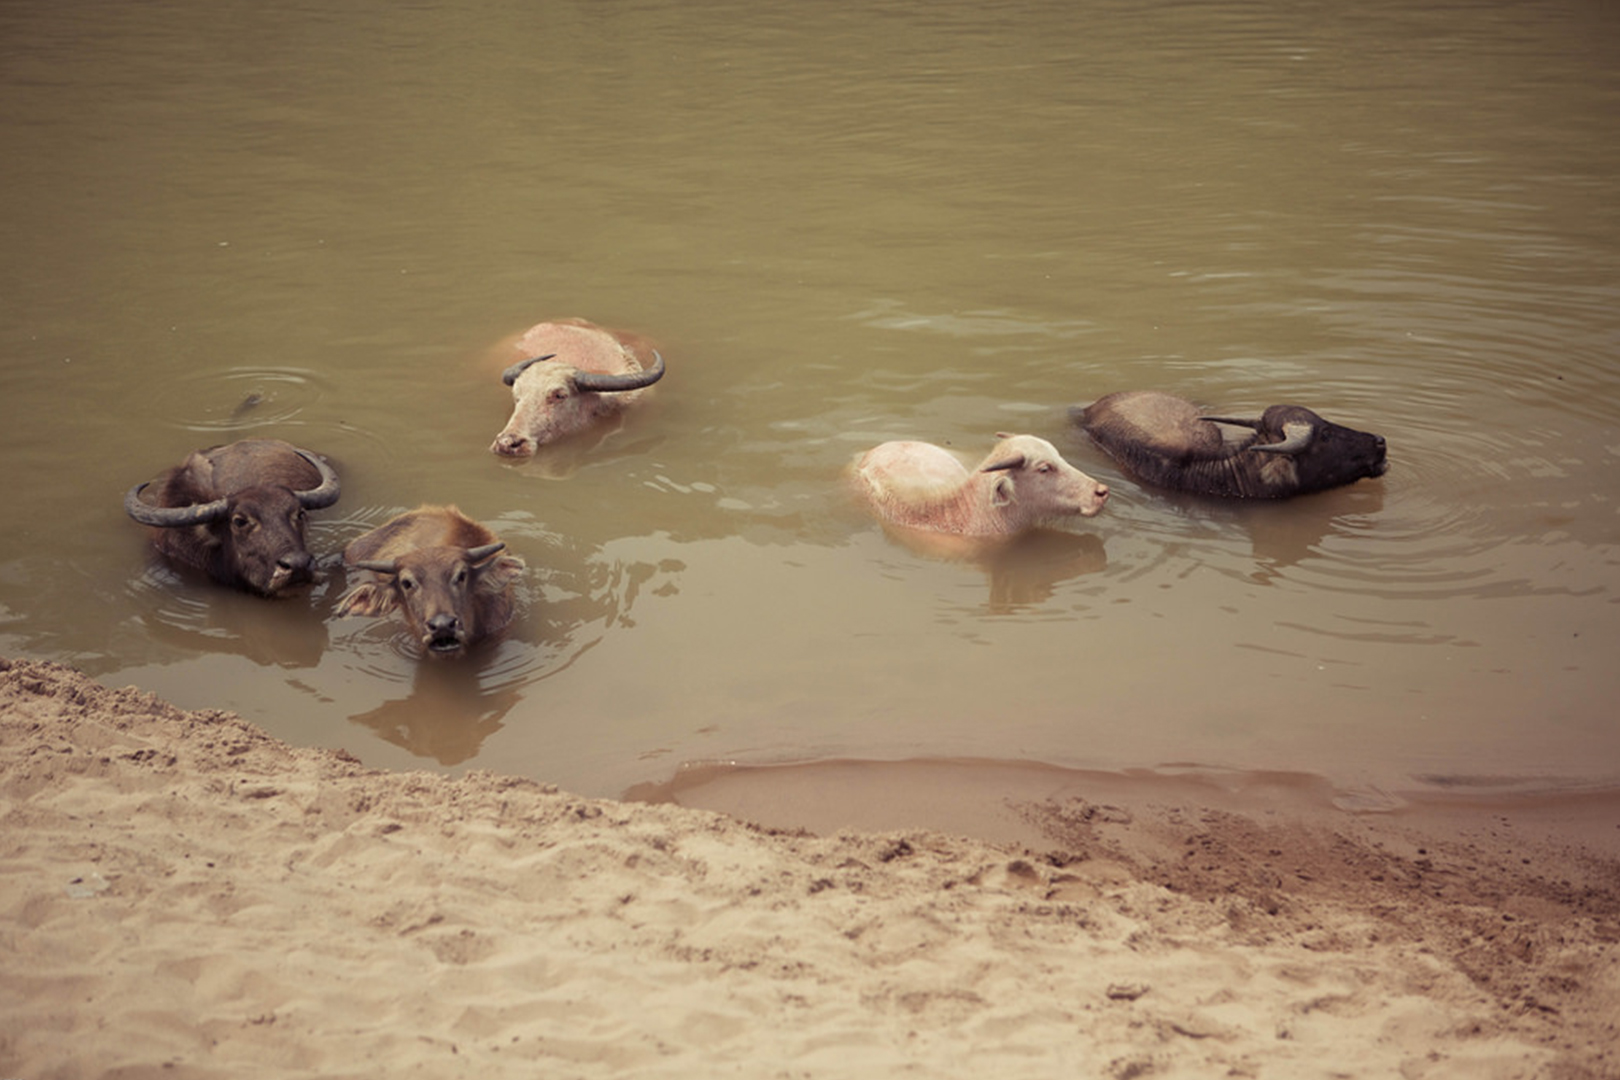 Water buffalo in the river